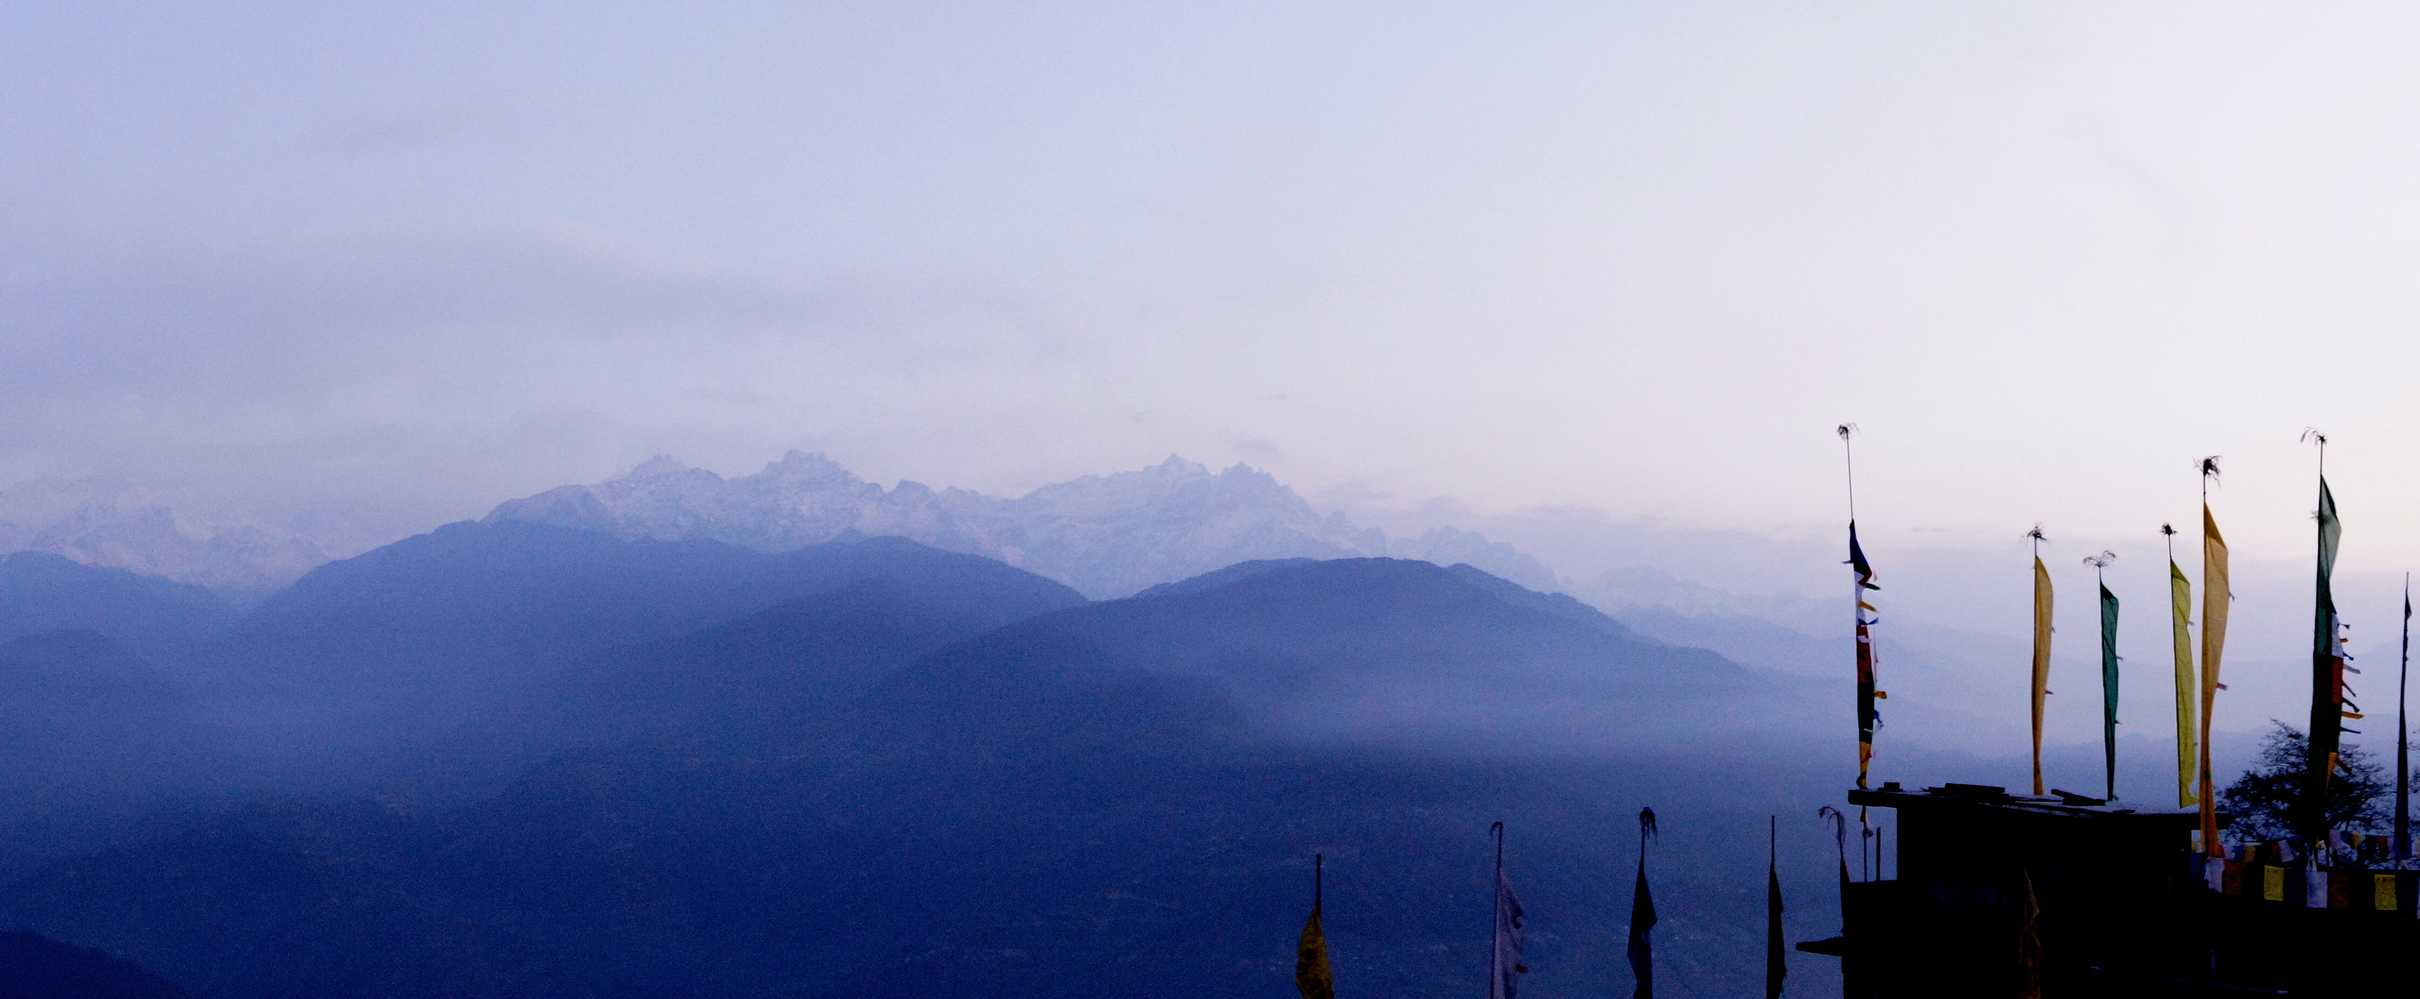 The Kanchenjunga Range as seen from Pelling